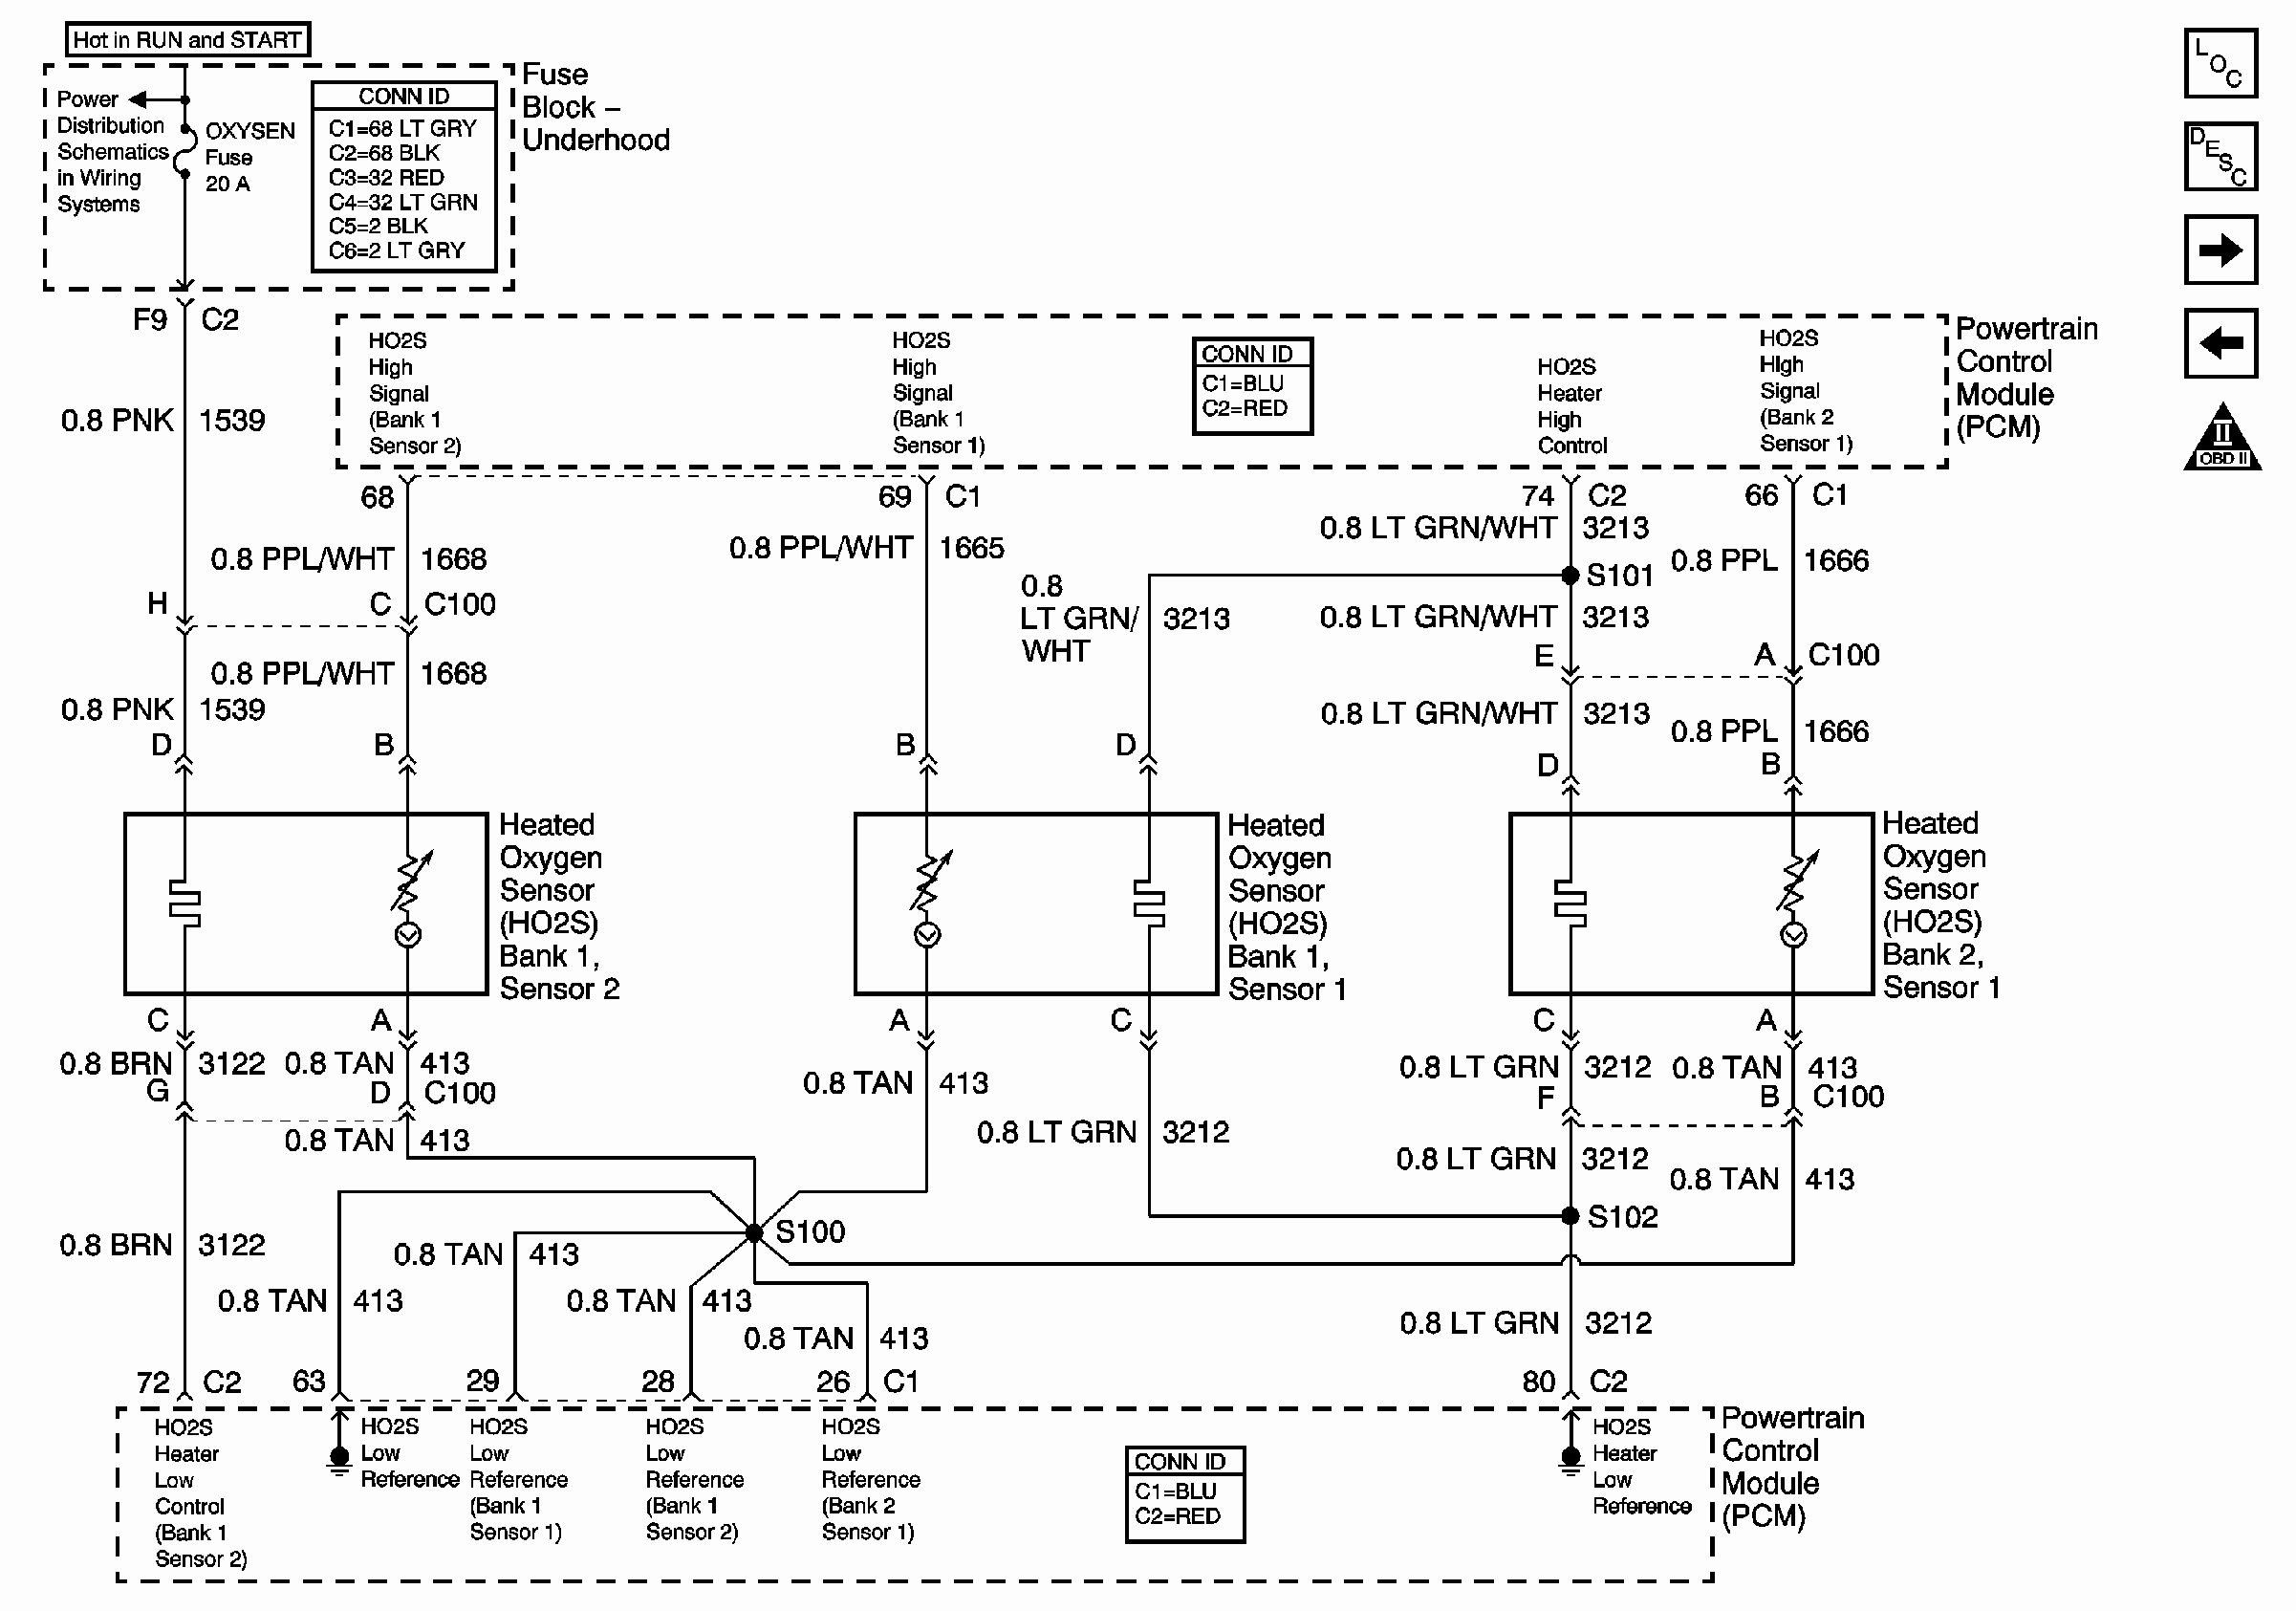 New Wiring Diagram Ac Sharp Inverter Diagram Diagramtemplate Diagramsample Check More At Https Servisi C Chevy Equinox Air Conditioner Maintenance Diagram